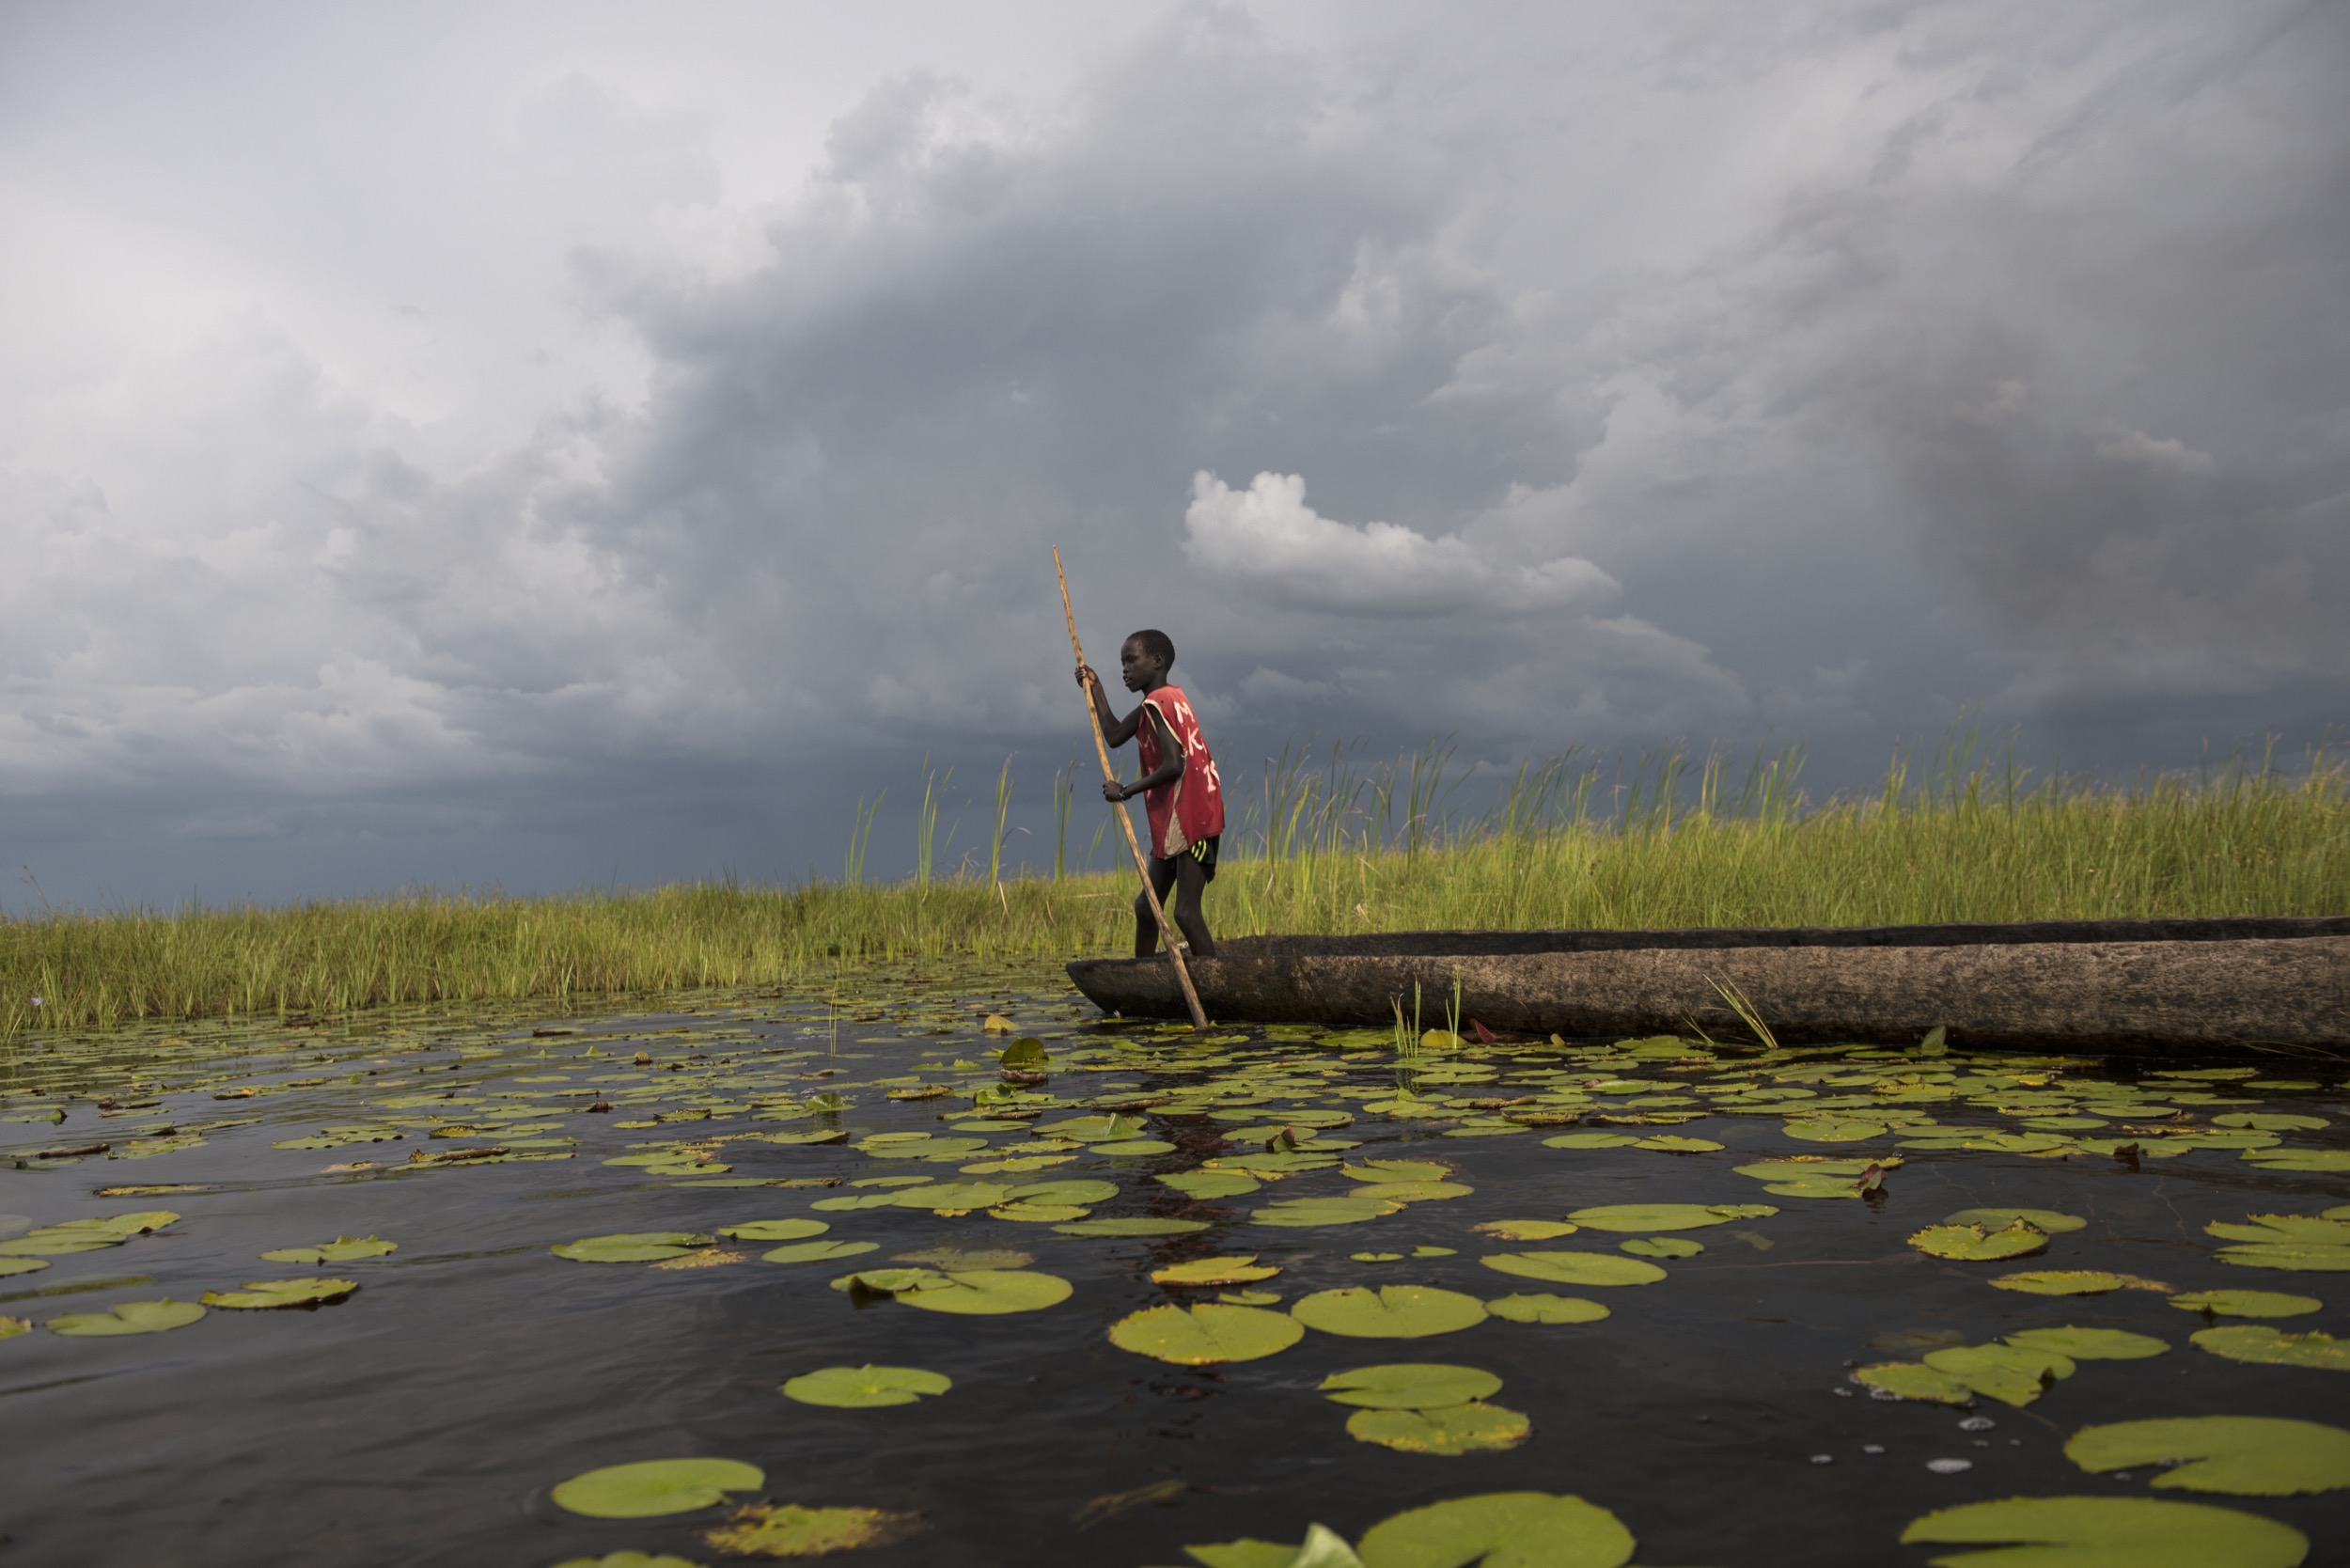 Nine-year-old Chuol fishes for tilapia in a  vast swamp in South Sudan after fighters swept into  his village, September 2015.